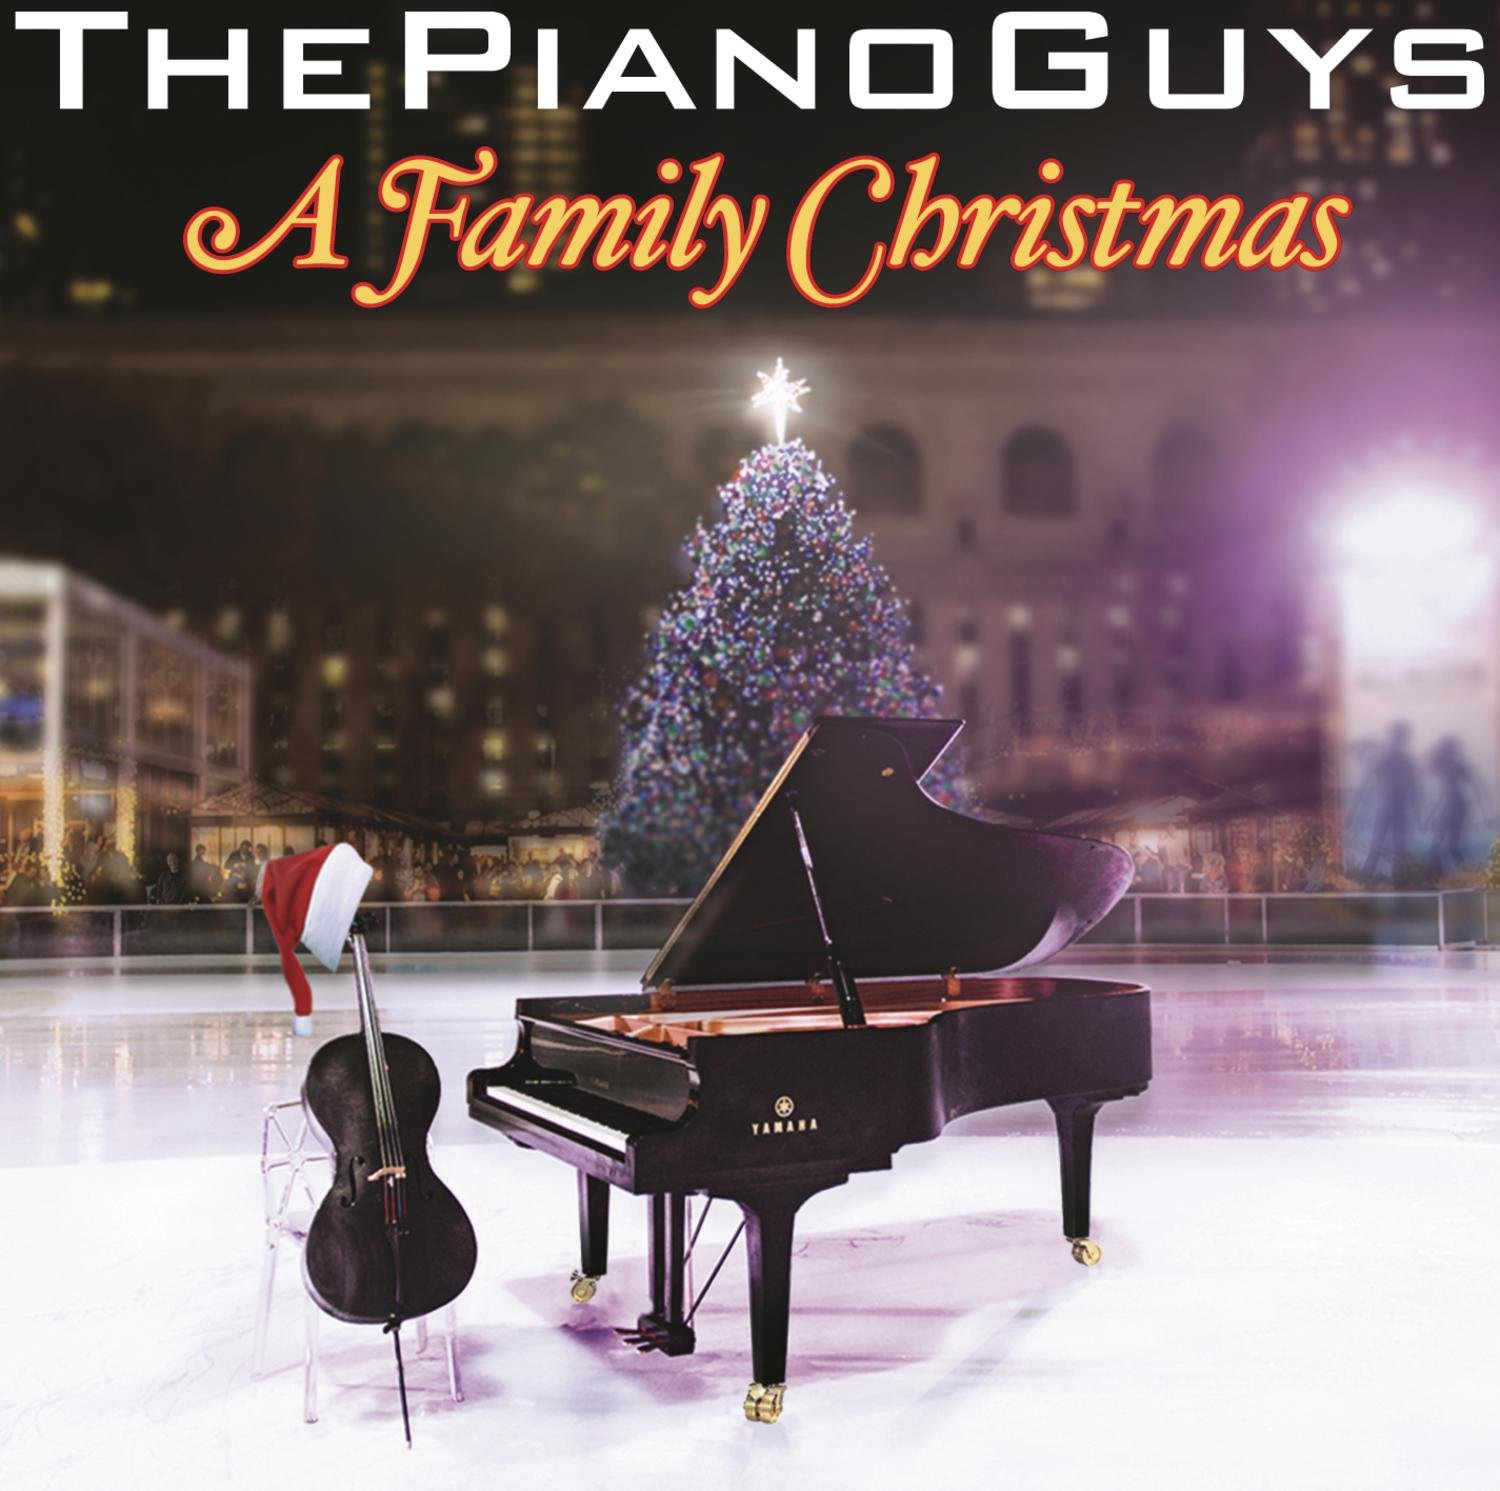 The Piano Guys - A Family Christmas - Amazon.com Music